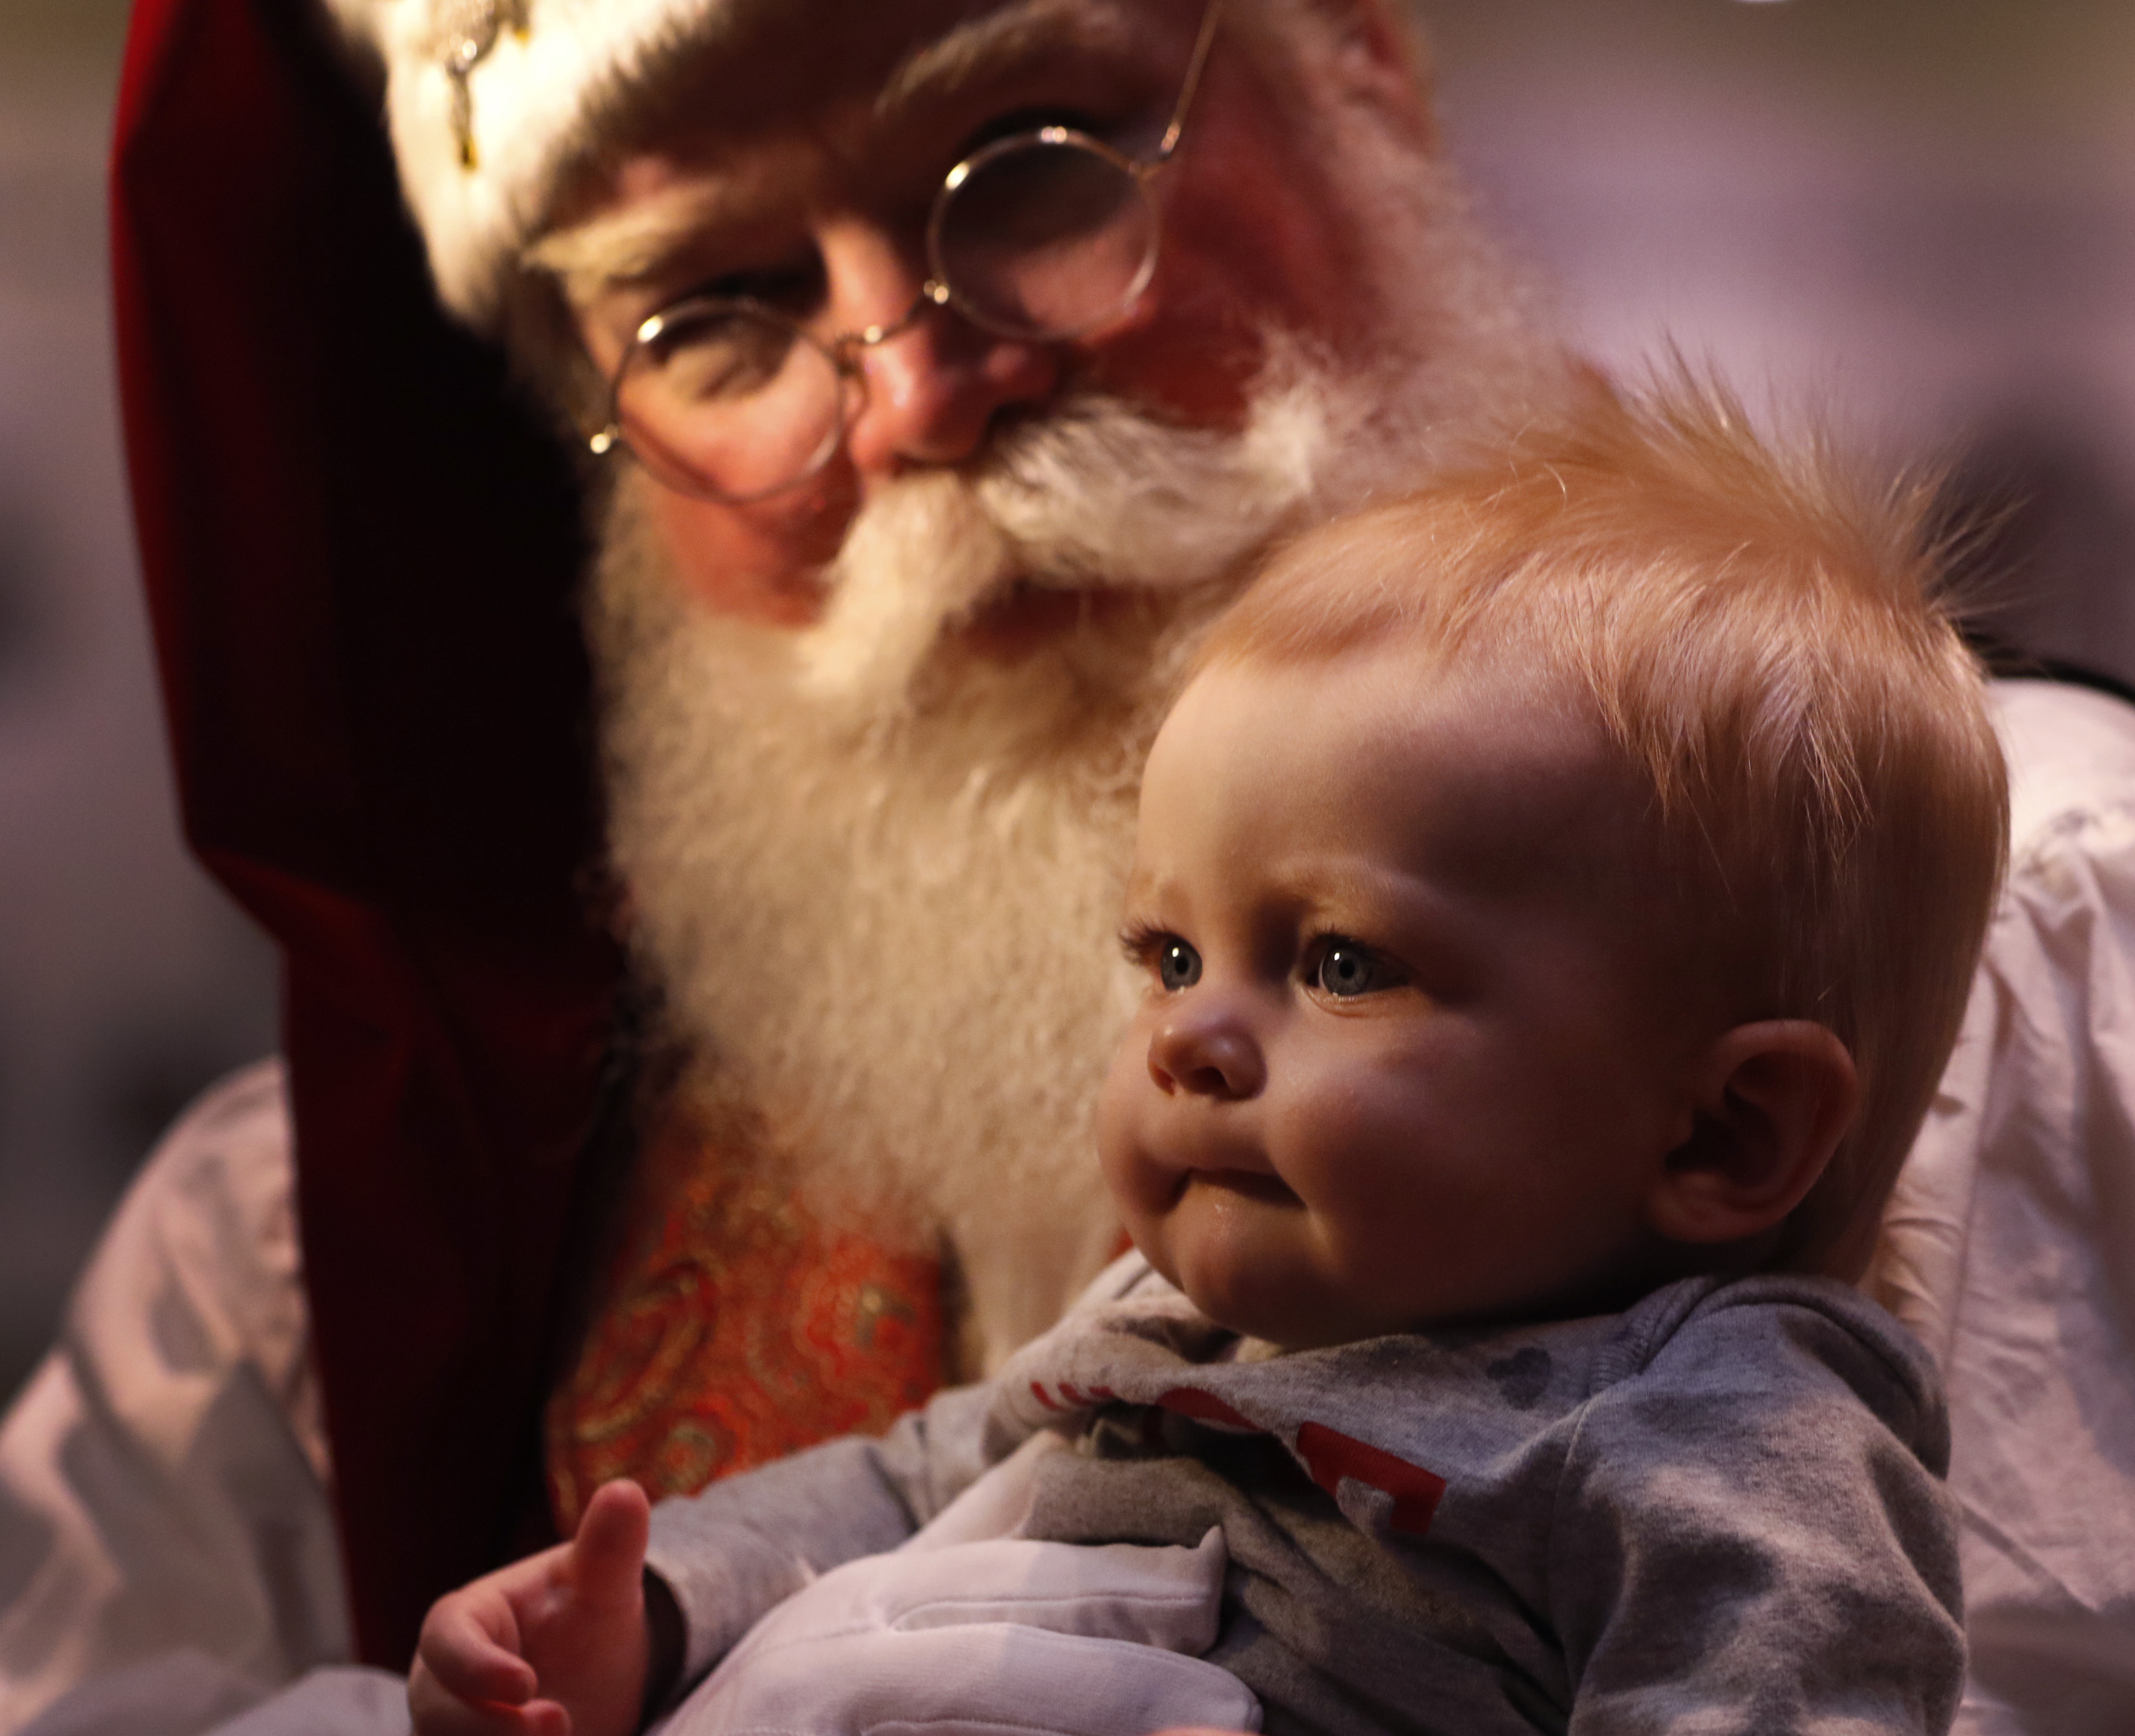 Chuck Lee, a part-time Santa Claus, holds 10-month-old Liam Holzer in the lobby at Baylor University... [+] Medical Center in Dallas on Dec. 19, 2014. Lee lost a total of 50 pounds after some health issues made him want to lead a healthier lifestyle. (AP Photo/The Dallas Morning News, Rose Baca)